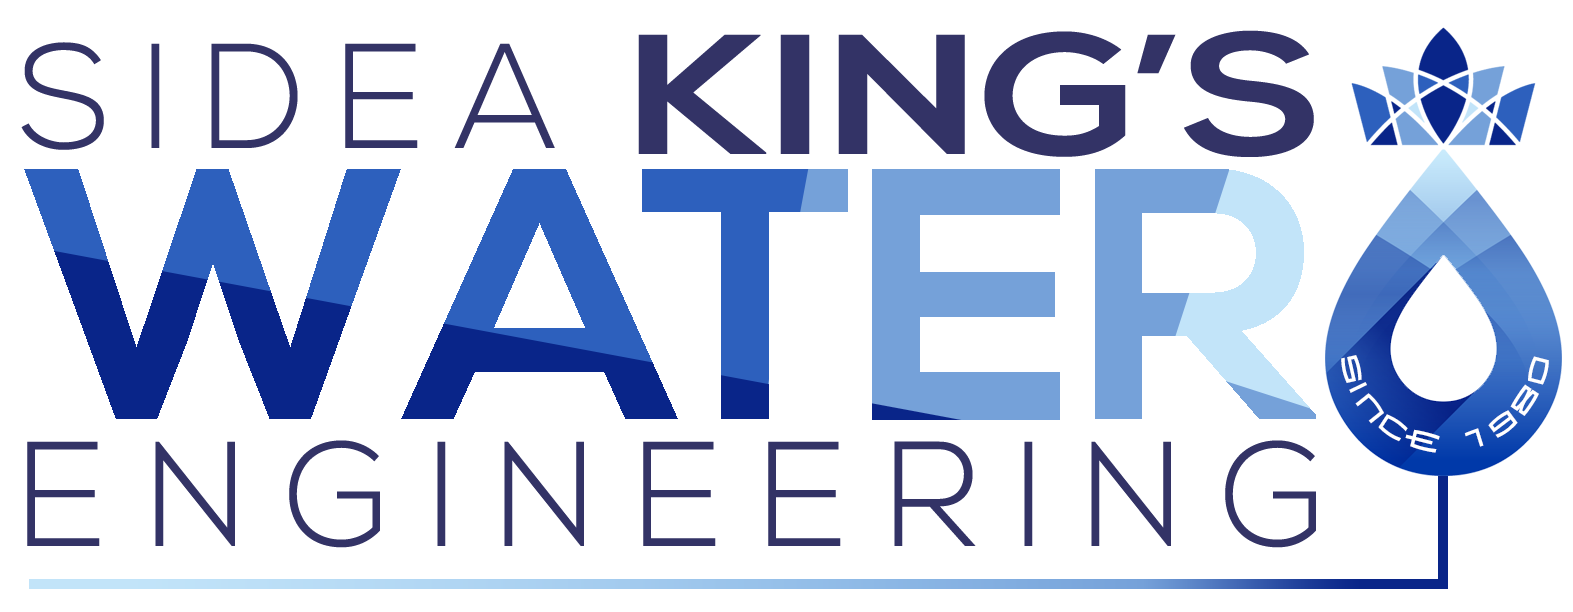 Sidea King's Water